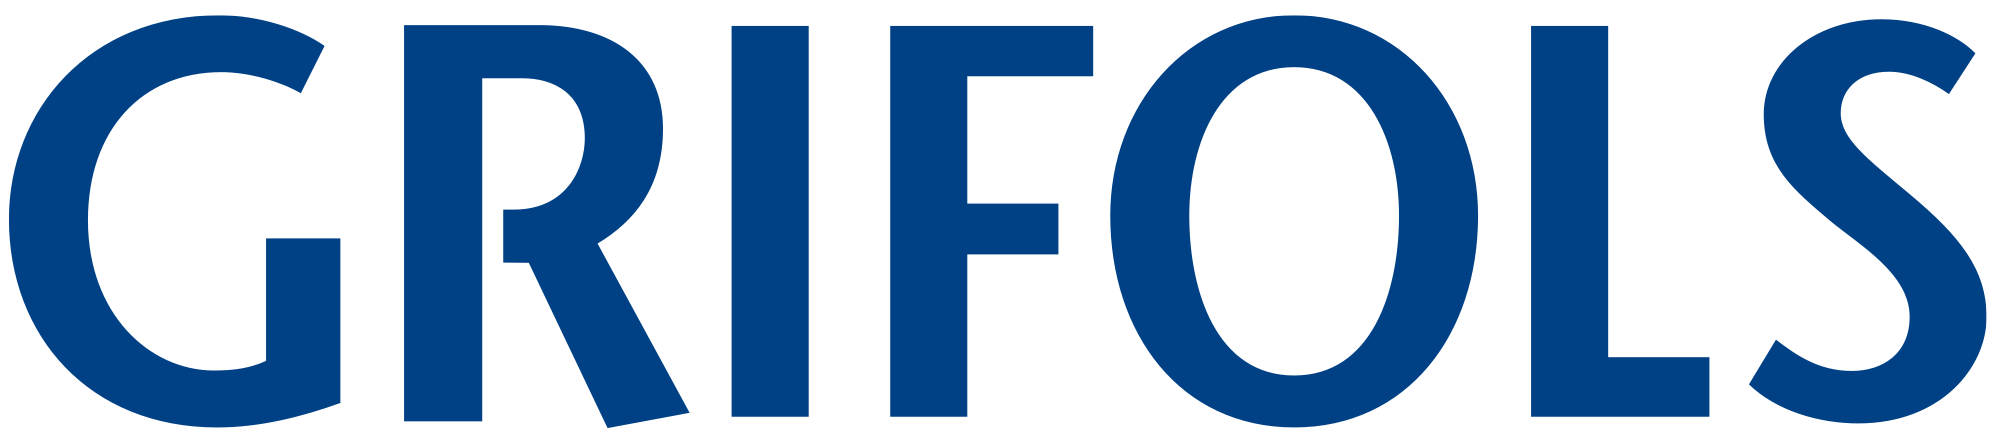 Blue Grifols United States corporate logo